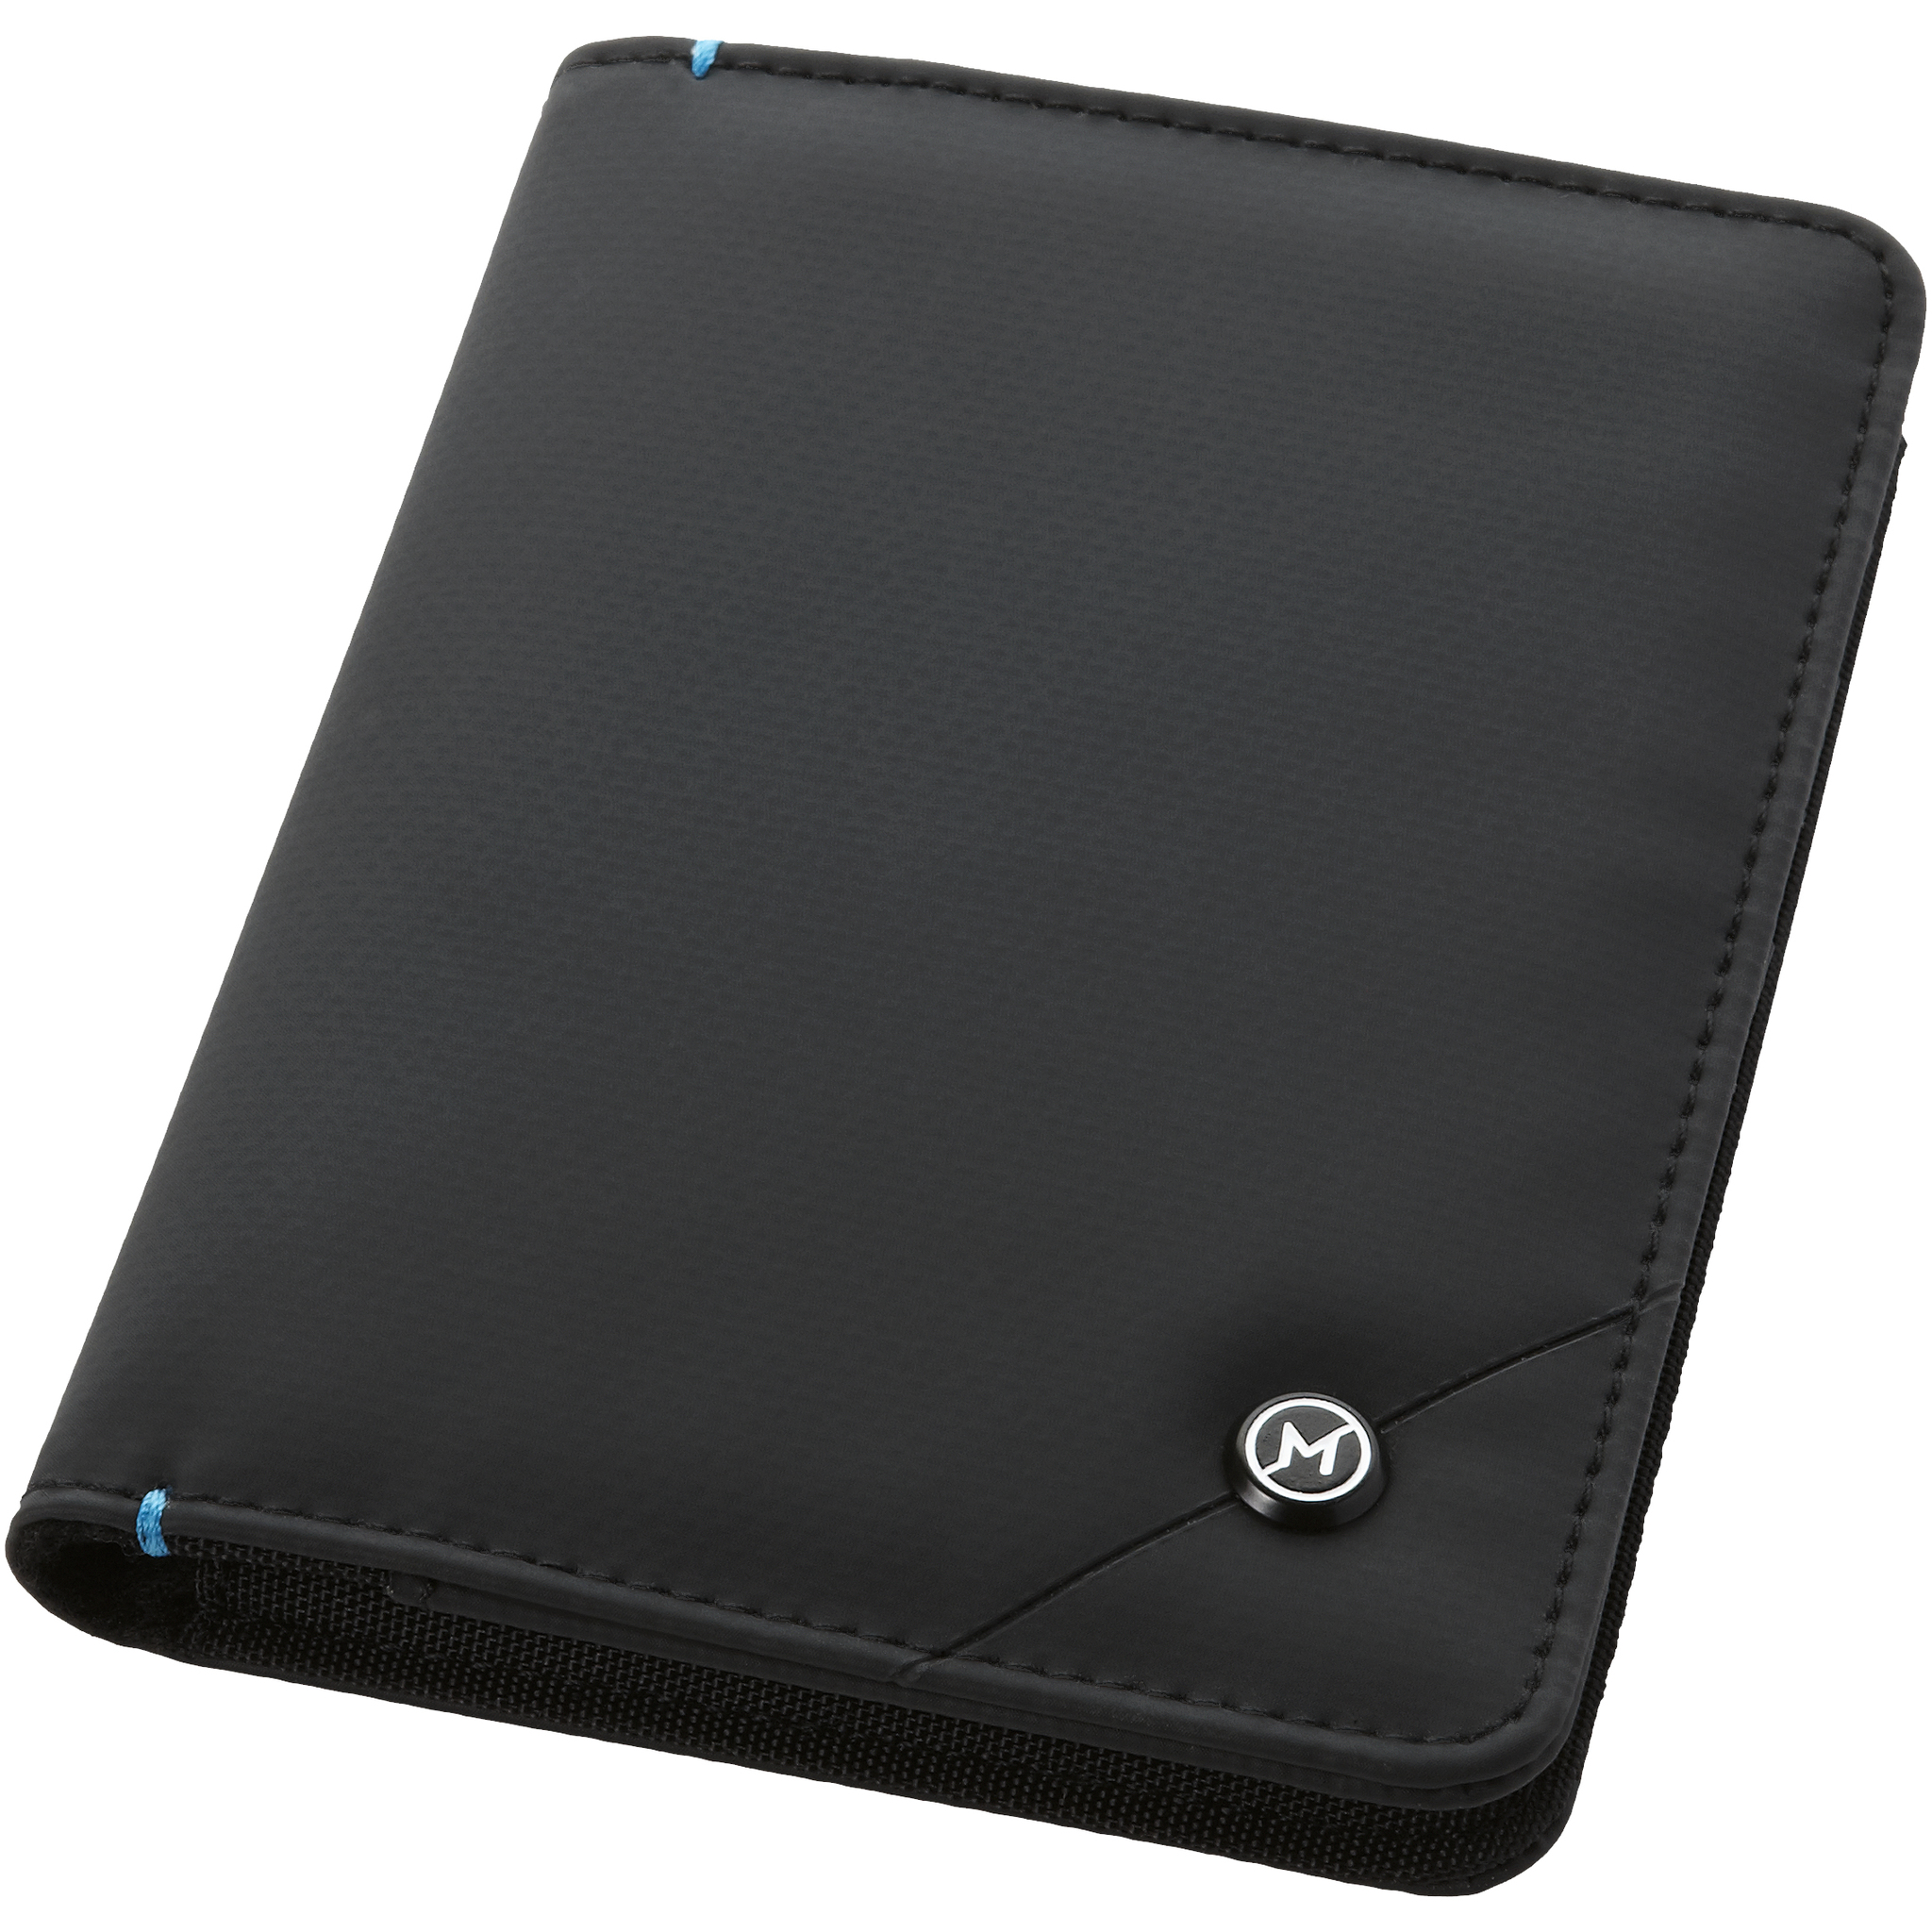 Promotional Odyssey RFID passport cover